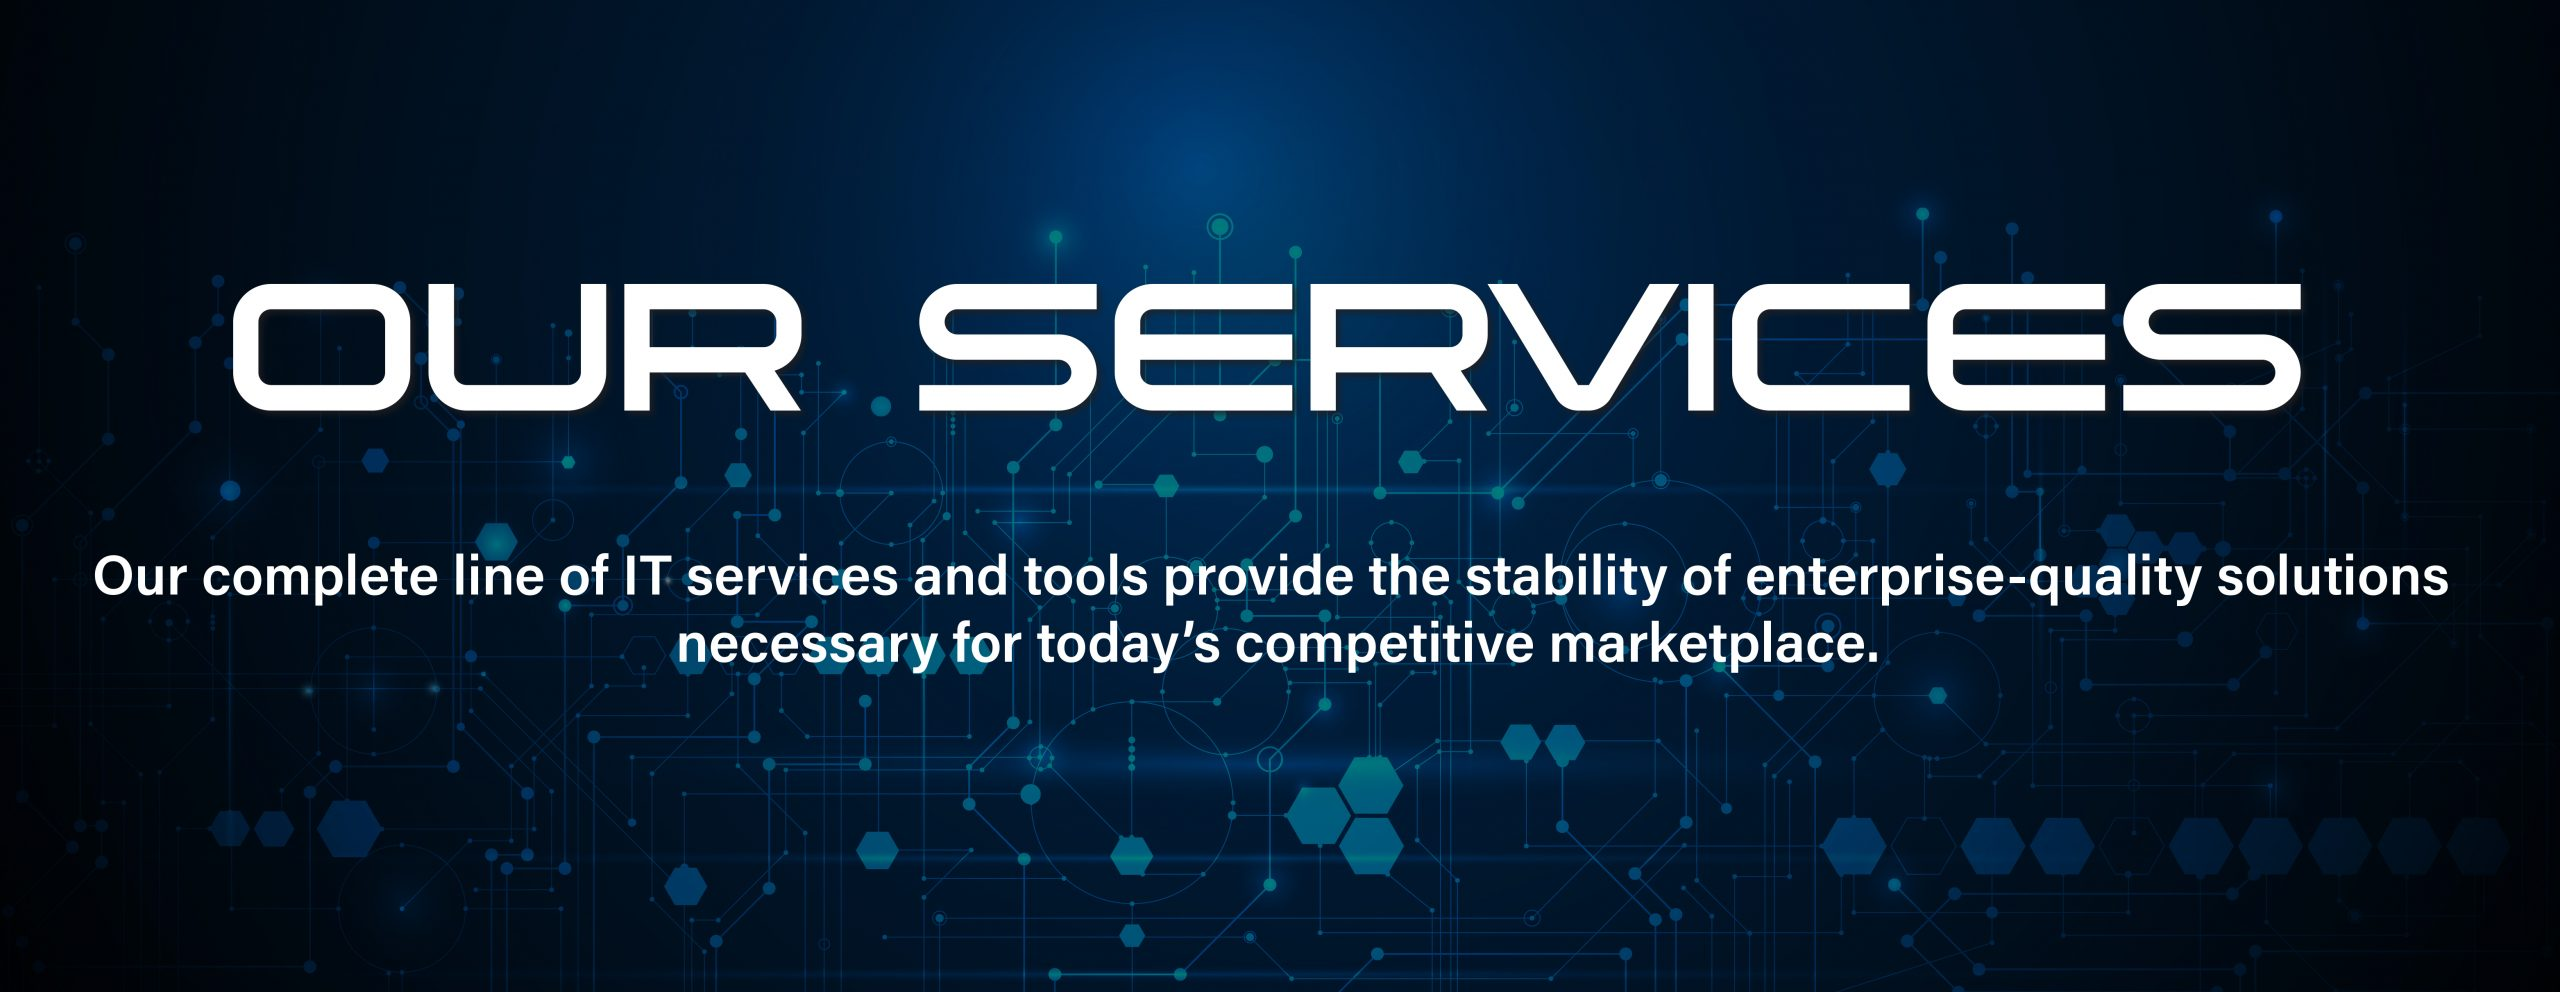 Our Services | Our complete line of IT services and tools provide the stability of enterprise-quality solutions necessary for today's competitive marketplace.